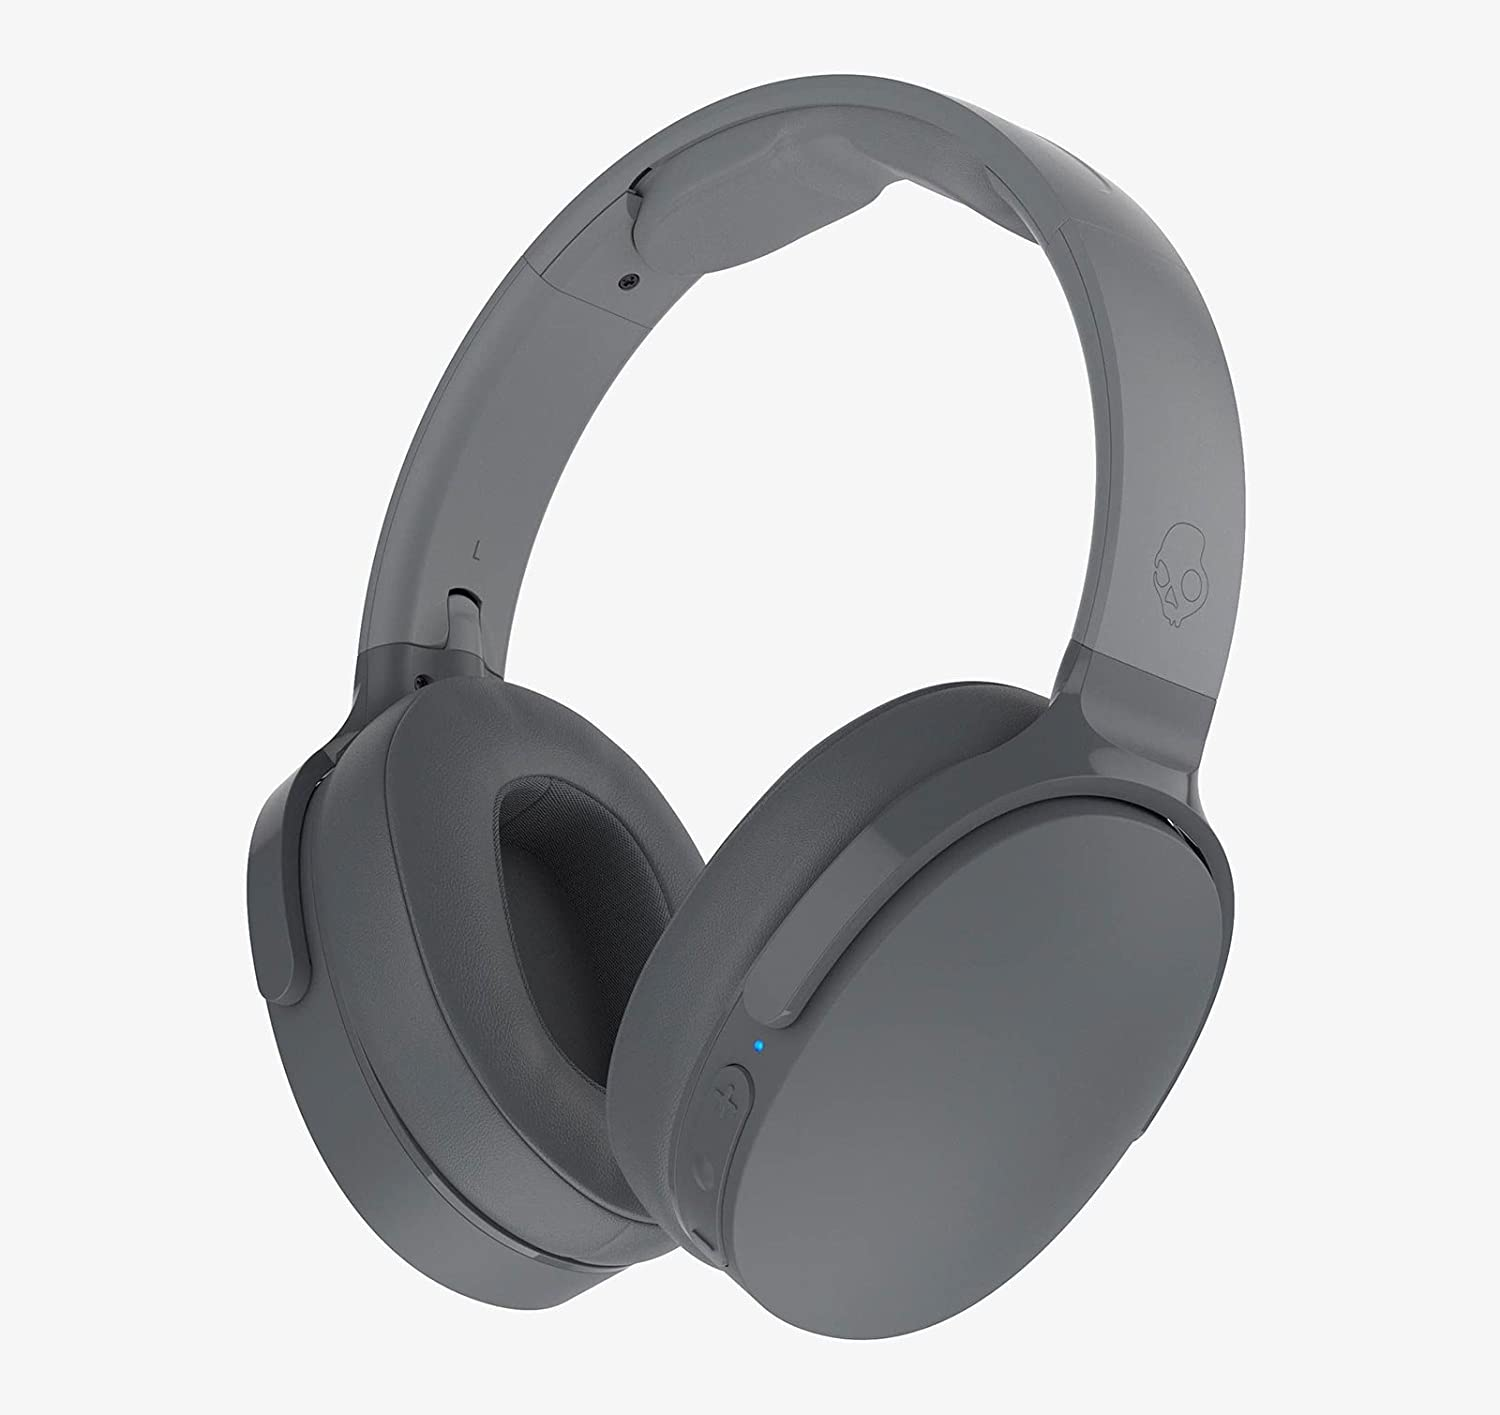 Skullcandy S6HTW-K033 Hesh 3 Bluetooth Wireless Over-Ear Headphones with Microphone, Rapid Charge 22-Hour Battery, Foldable, Memory Foam Ear Cushions for Comfortable All-Day Fit